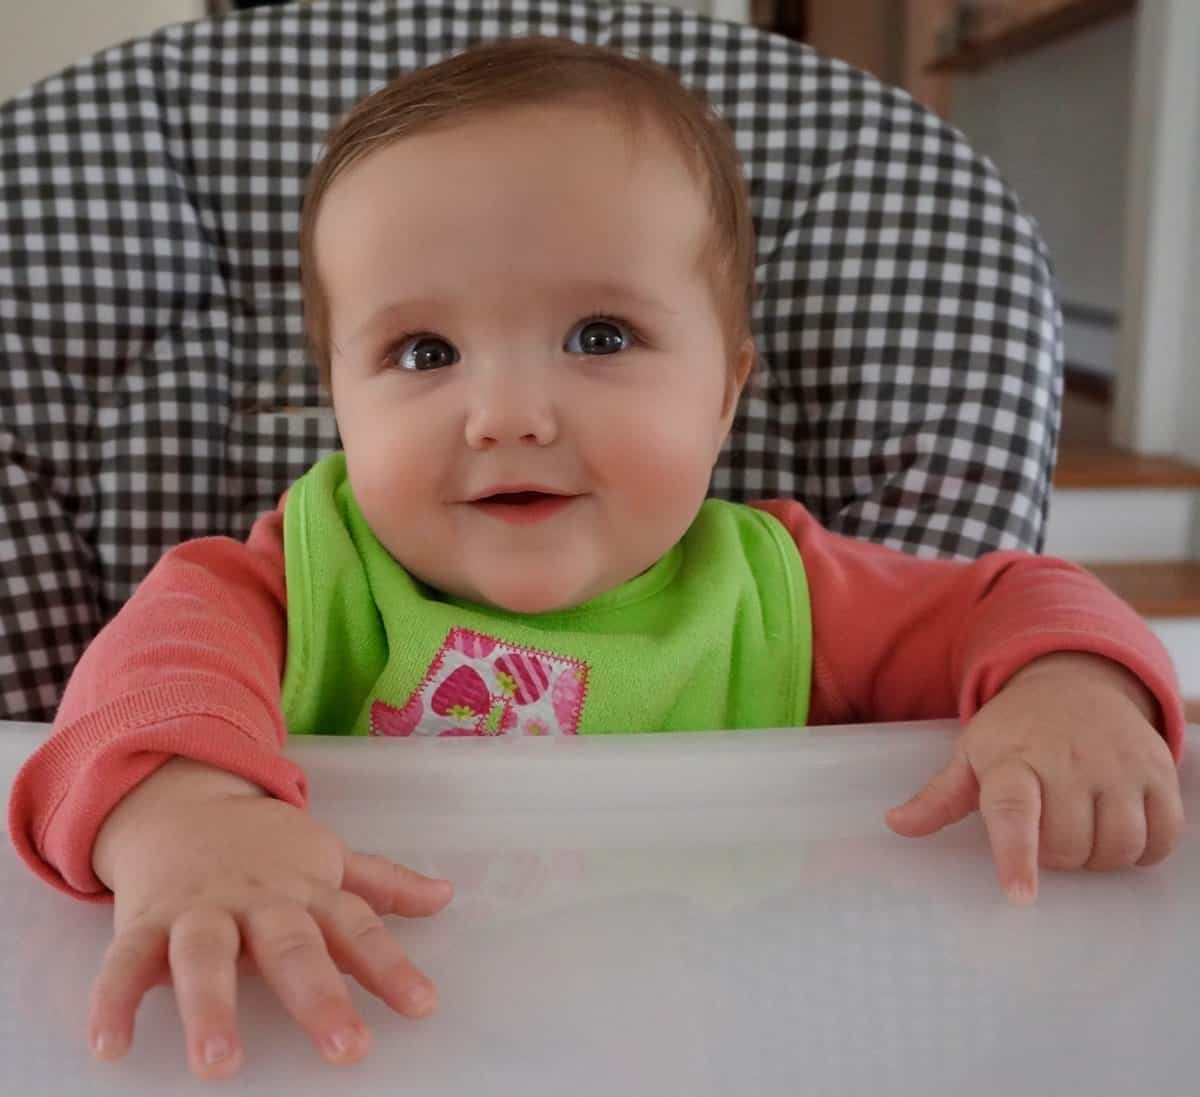 Annabelle in her high chair